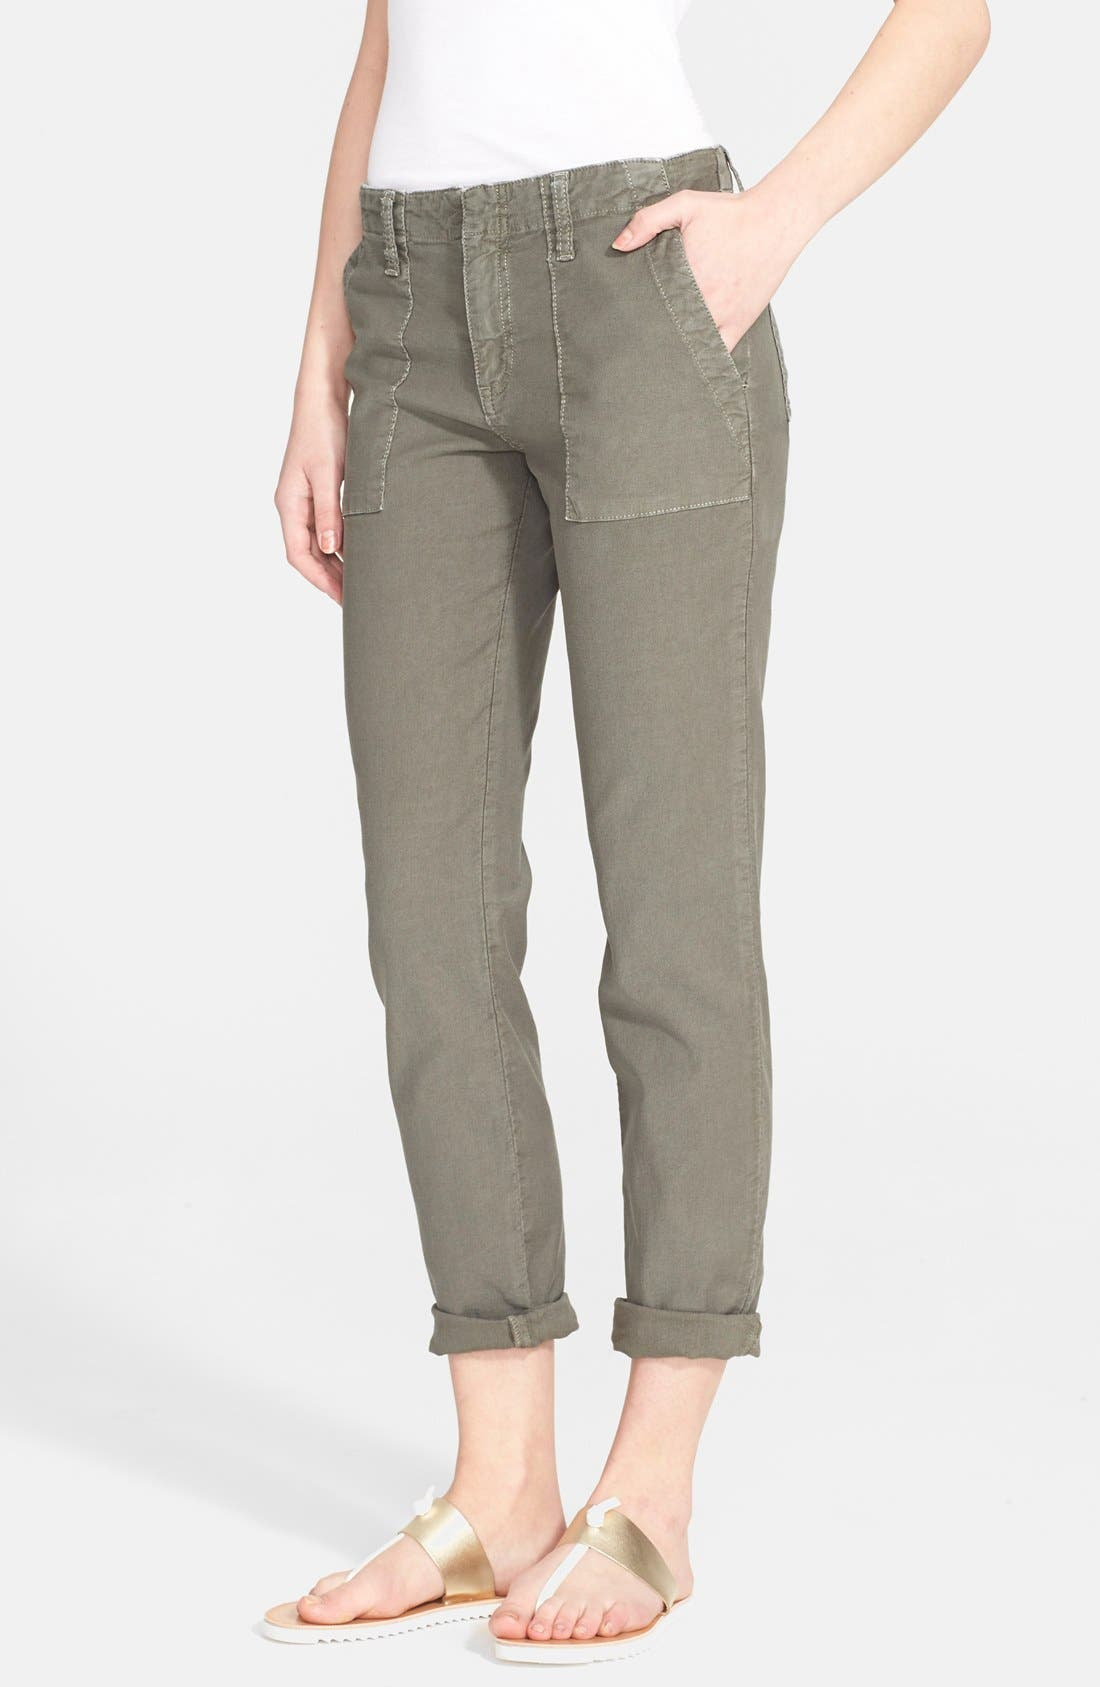 Painter Cotton & Linen Pants,                         Main,                         color, Fatigue